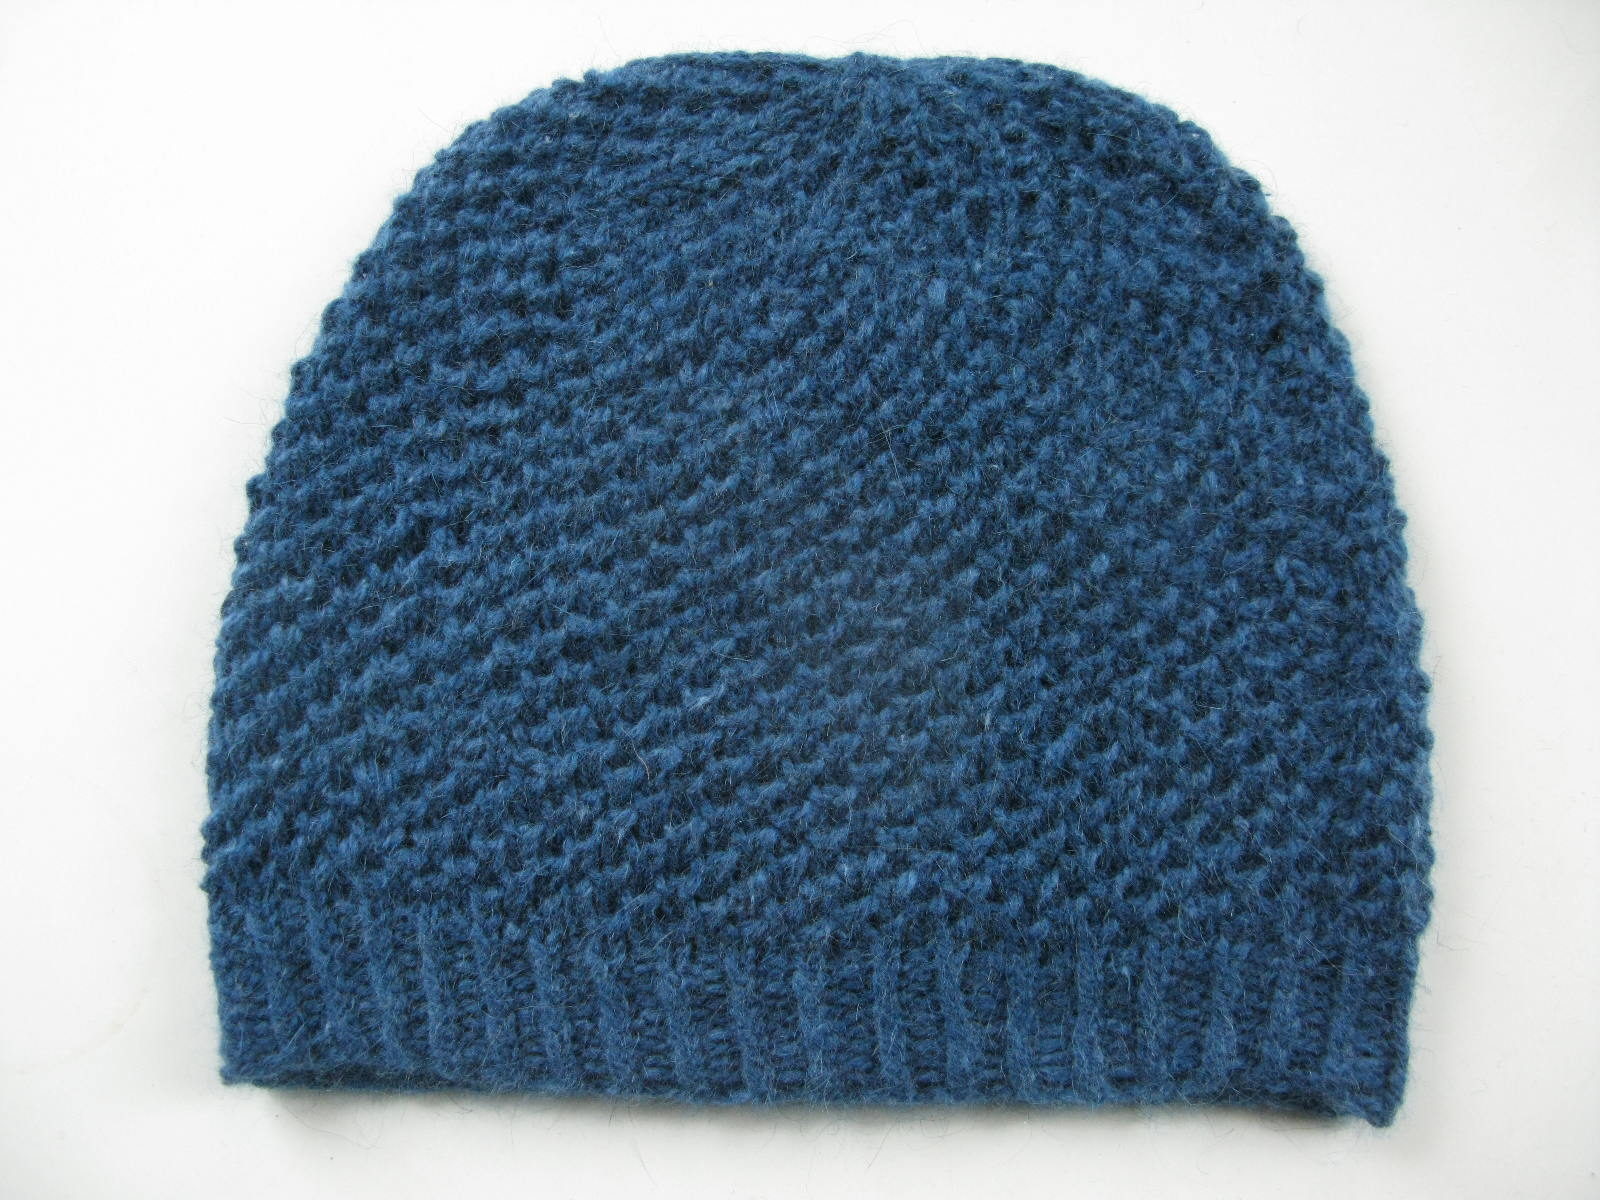 Knitting Decrease Moss Stitch : littletheorem: Islay Hat